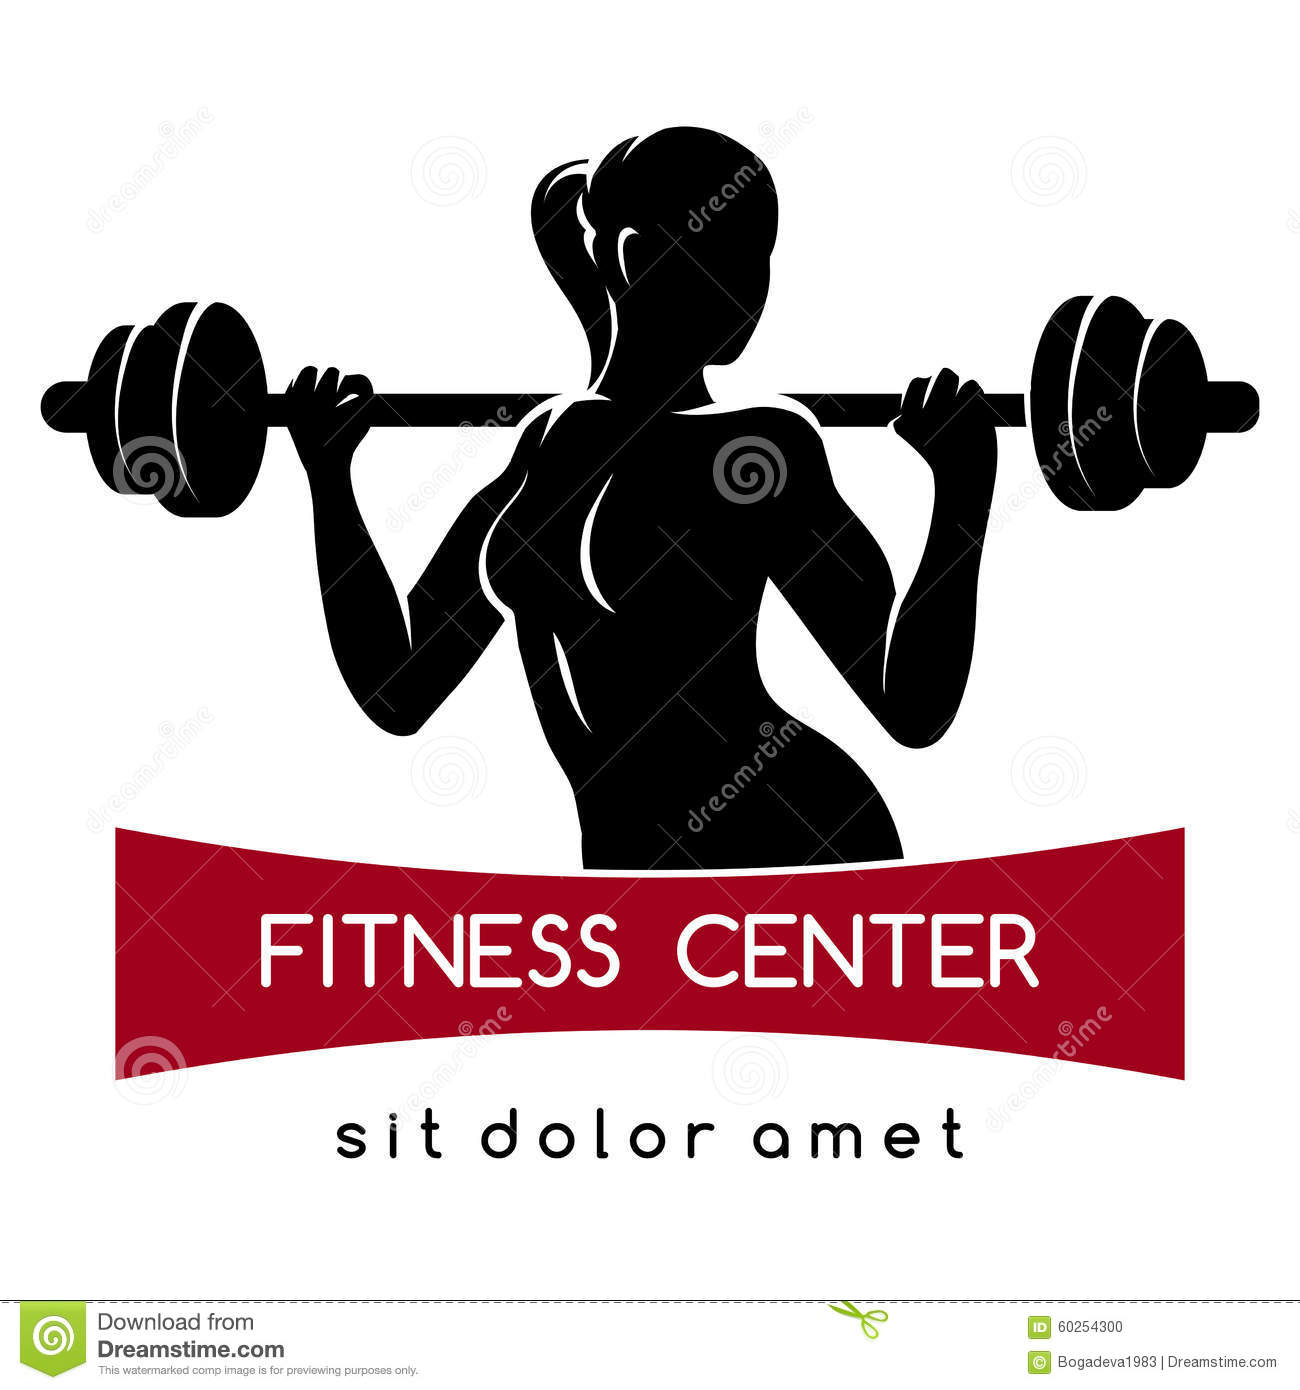 Fitness center or gym logo stock vector illustration of for Gym layout design software free